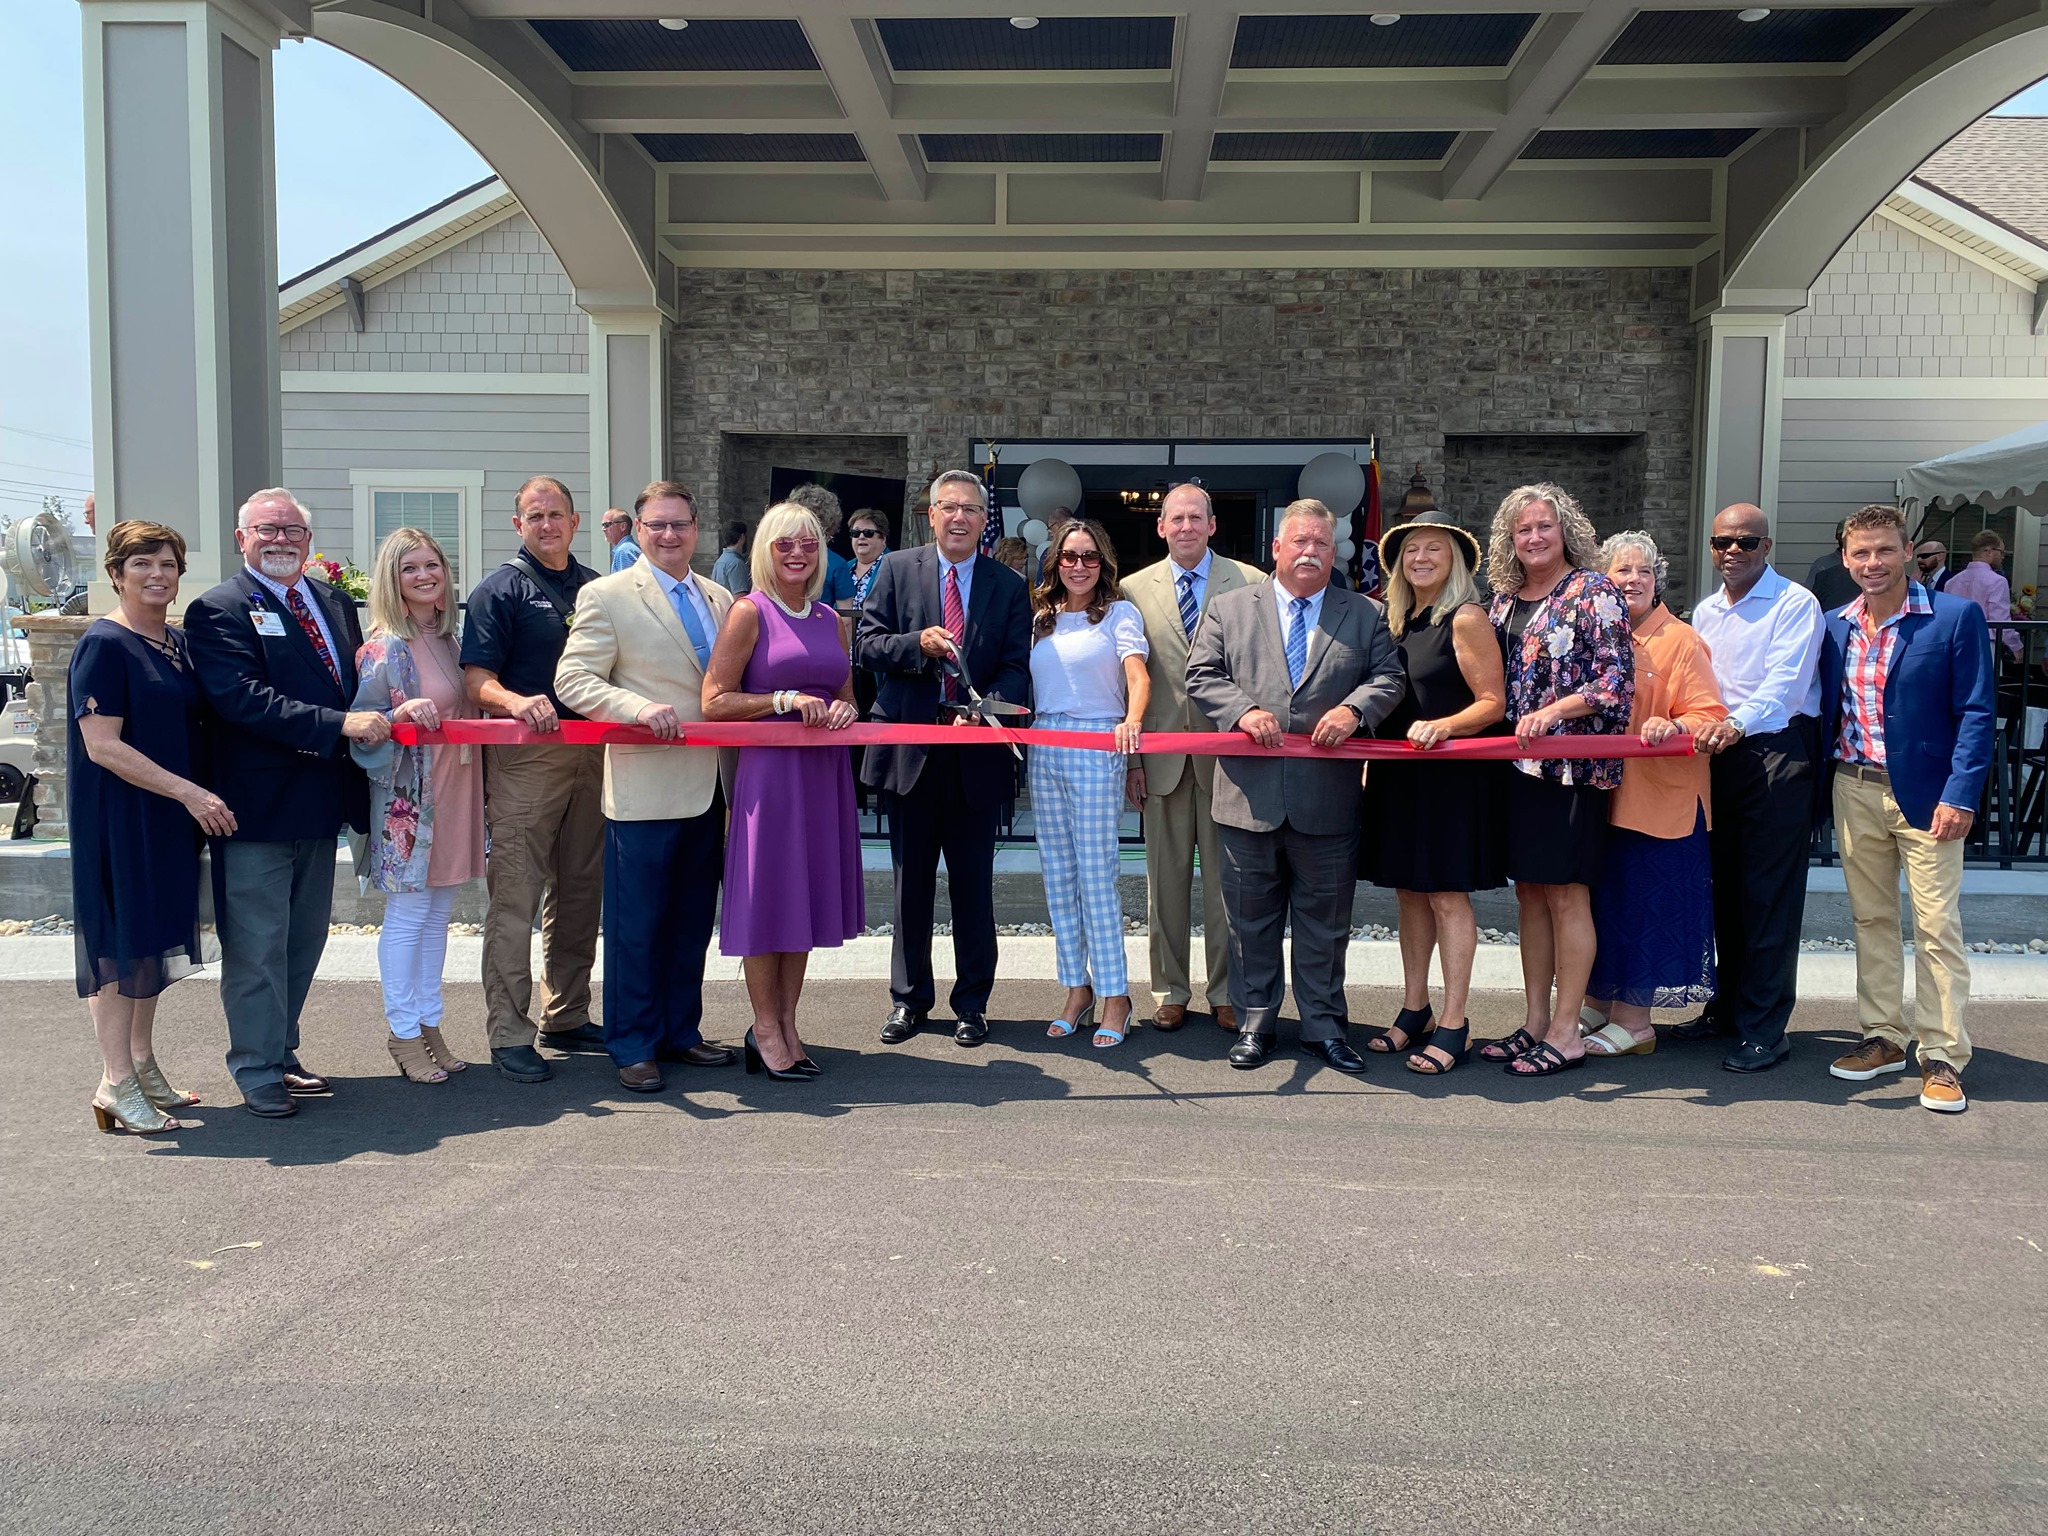 The Lantern At Morning Pointe Alzheimer's Center of Excellence Celebrates Re-Opening